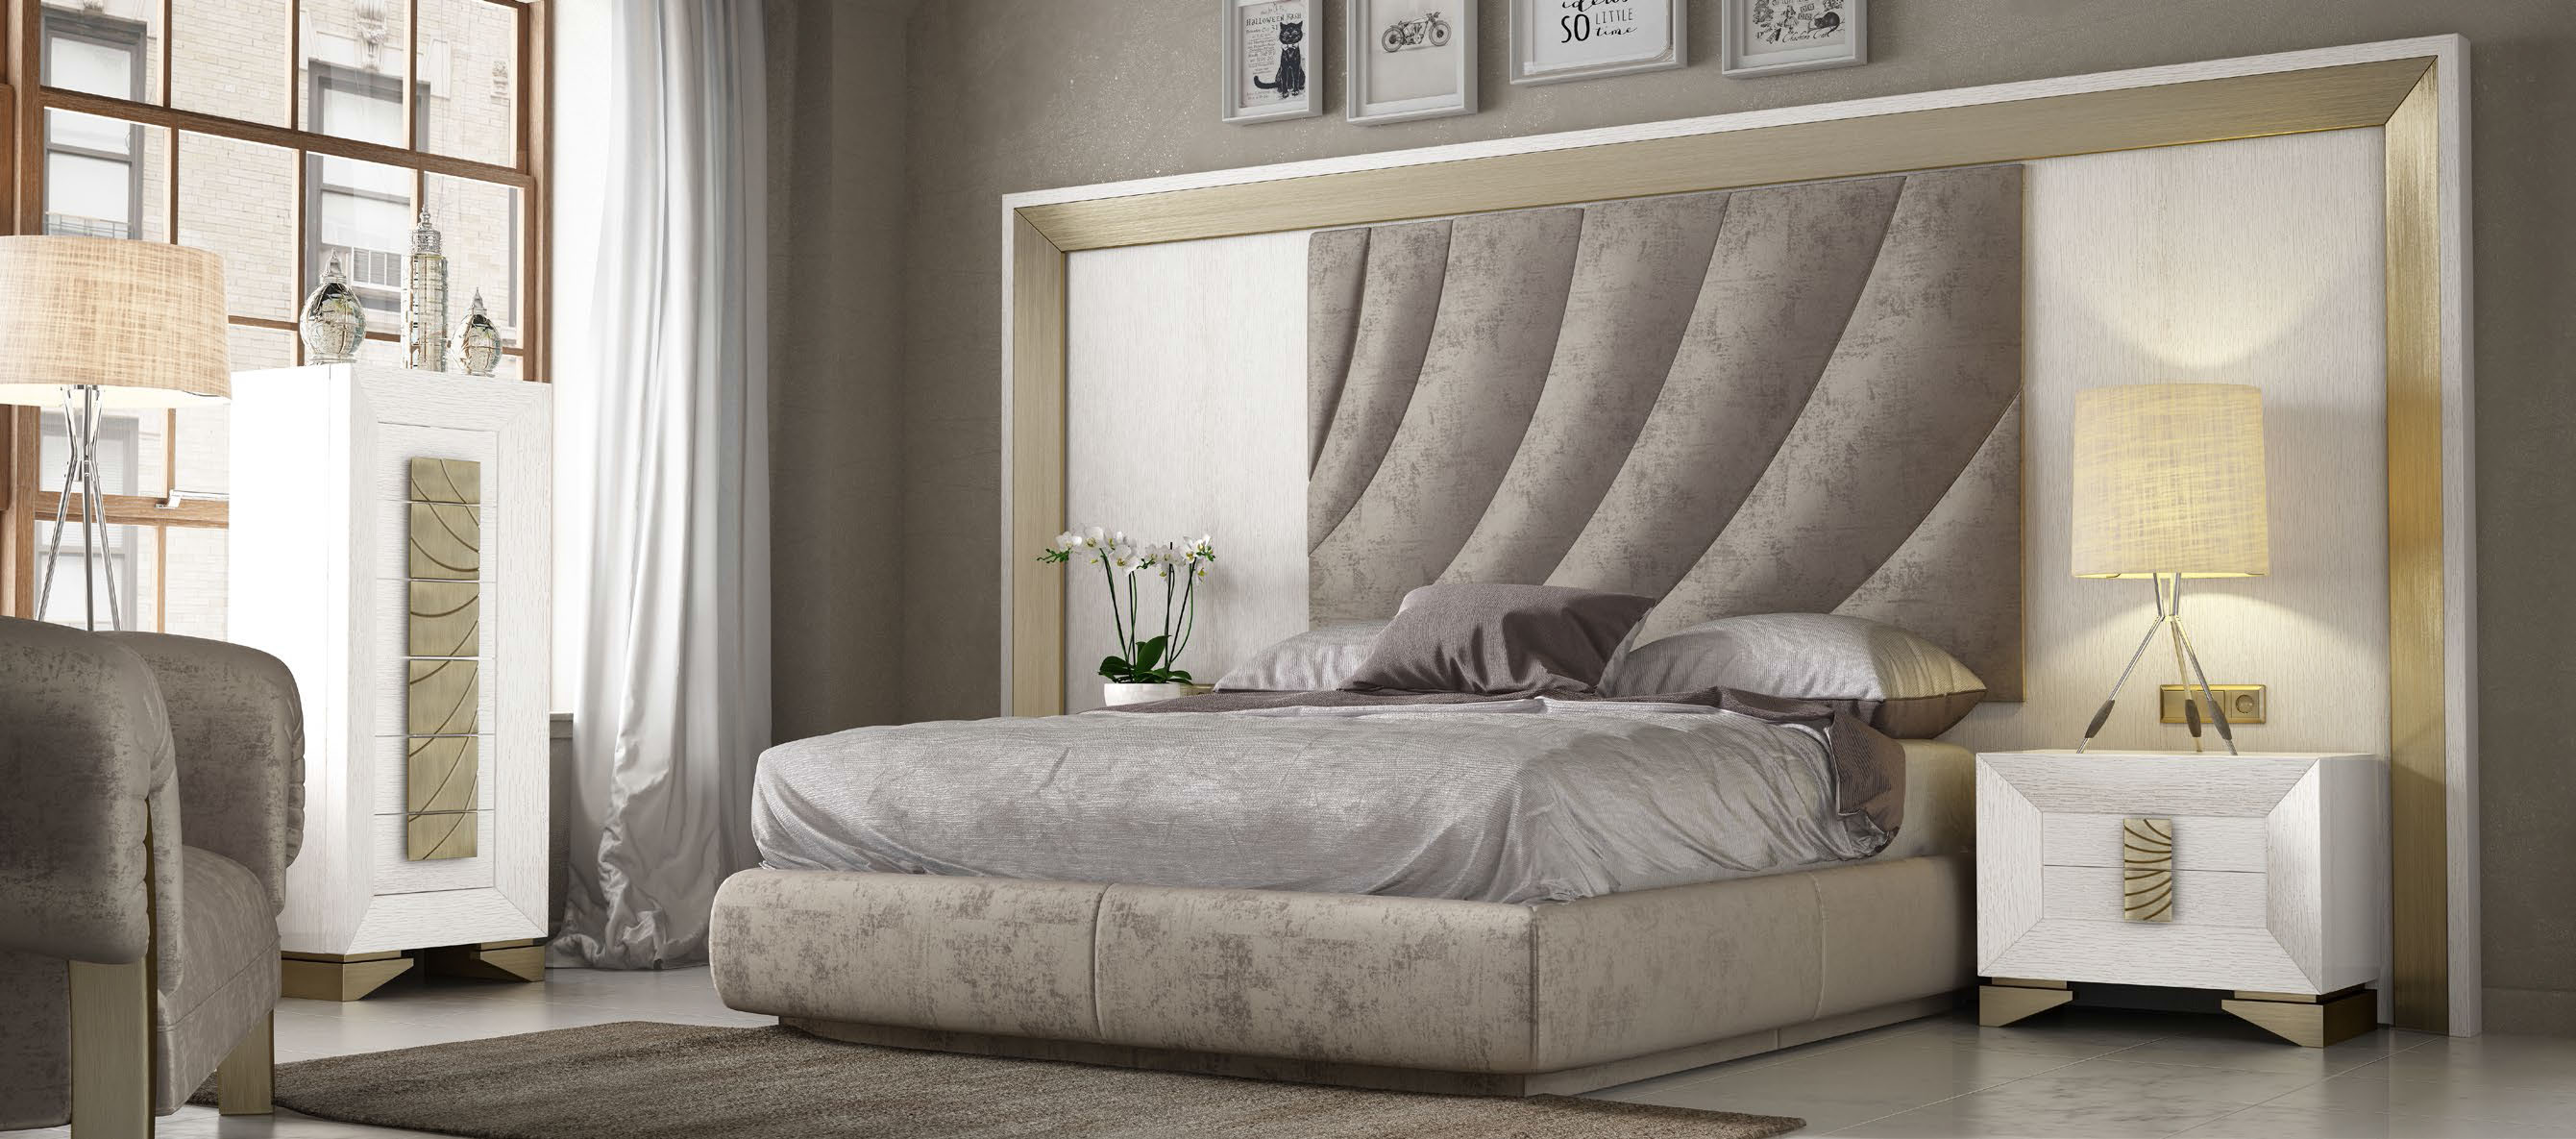 Brands Franco Furniture Bedrooms vol2, Spain DOR 128